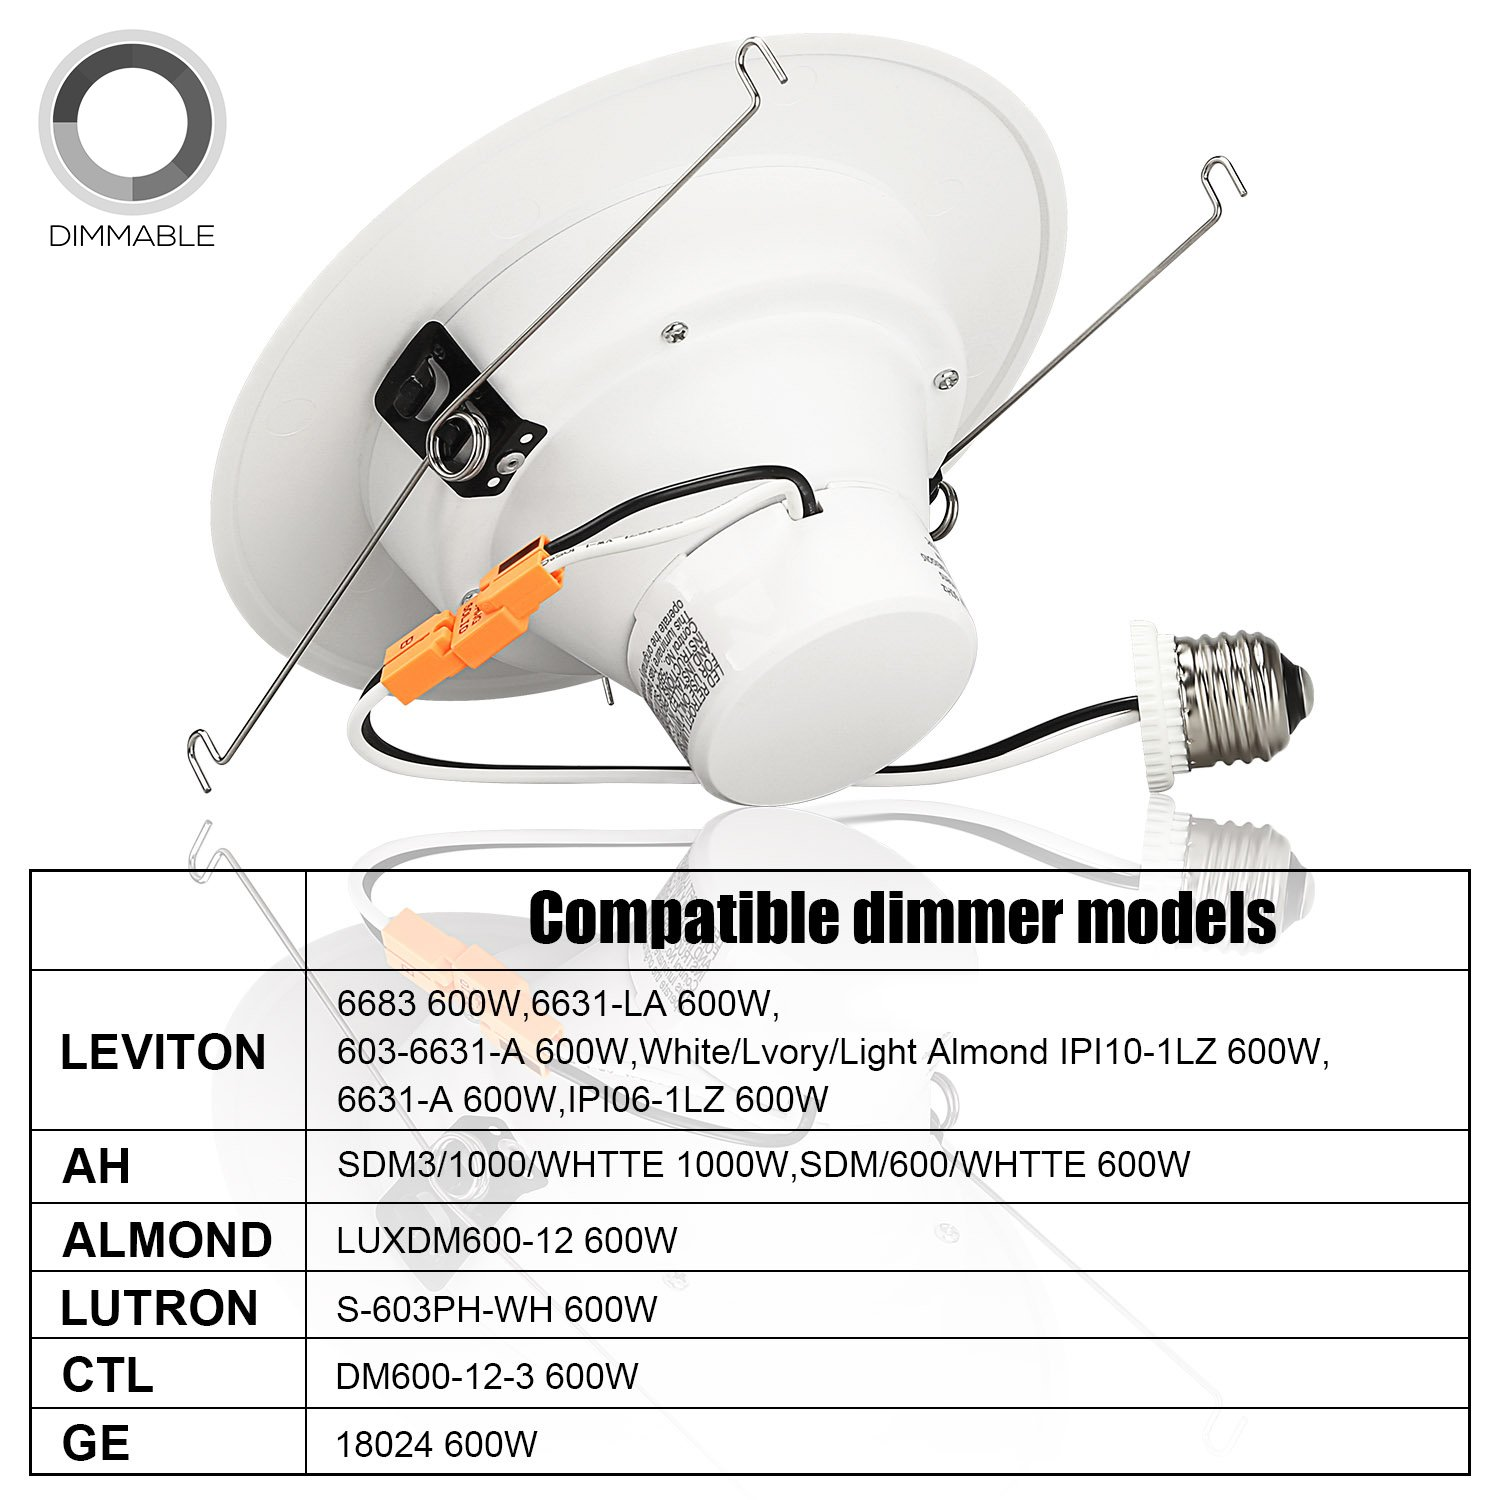 Led Downlight 0 10v Dimming Wiring Diagram Schematics Leviton Ipi06 28 Images Diagrams Omegahost Co 120v Ballast T8